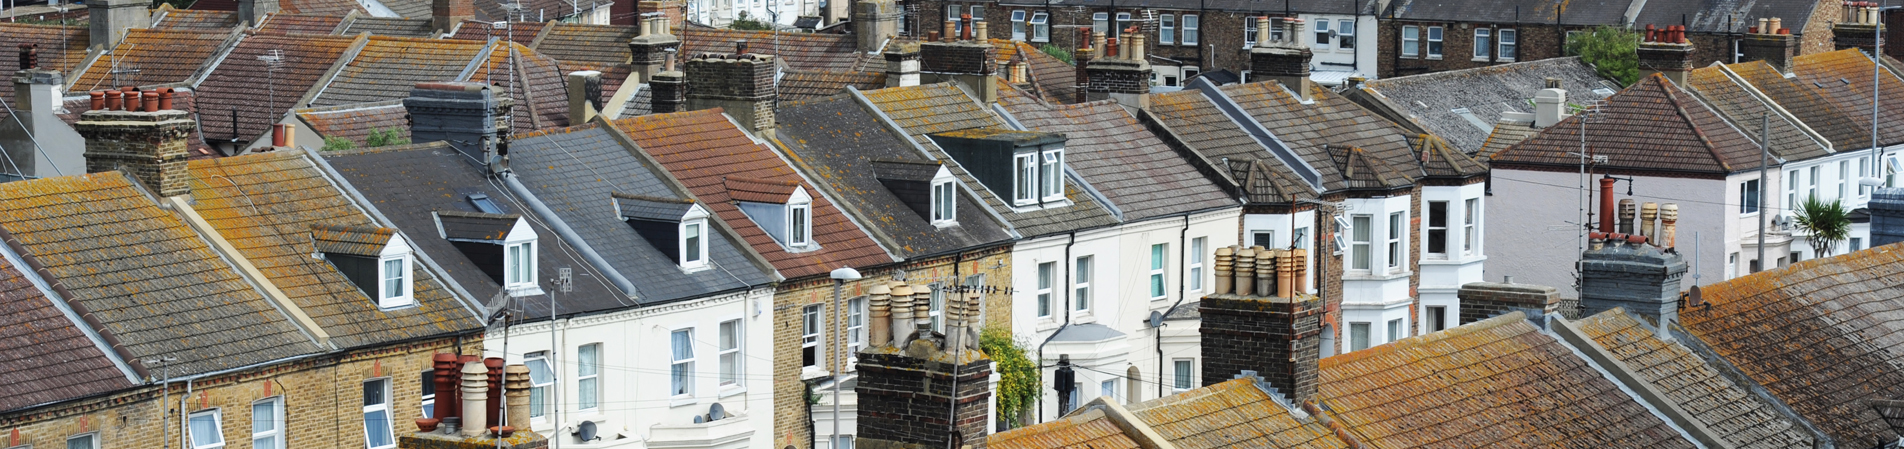 brighton-houses-rooftops